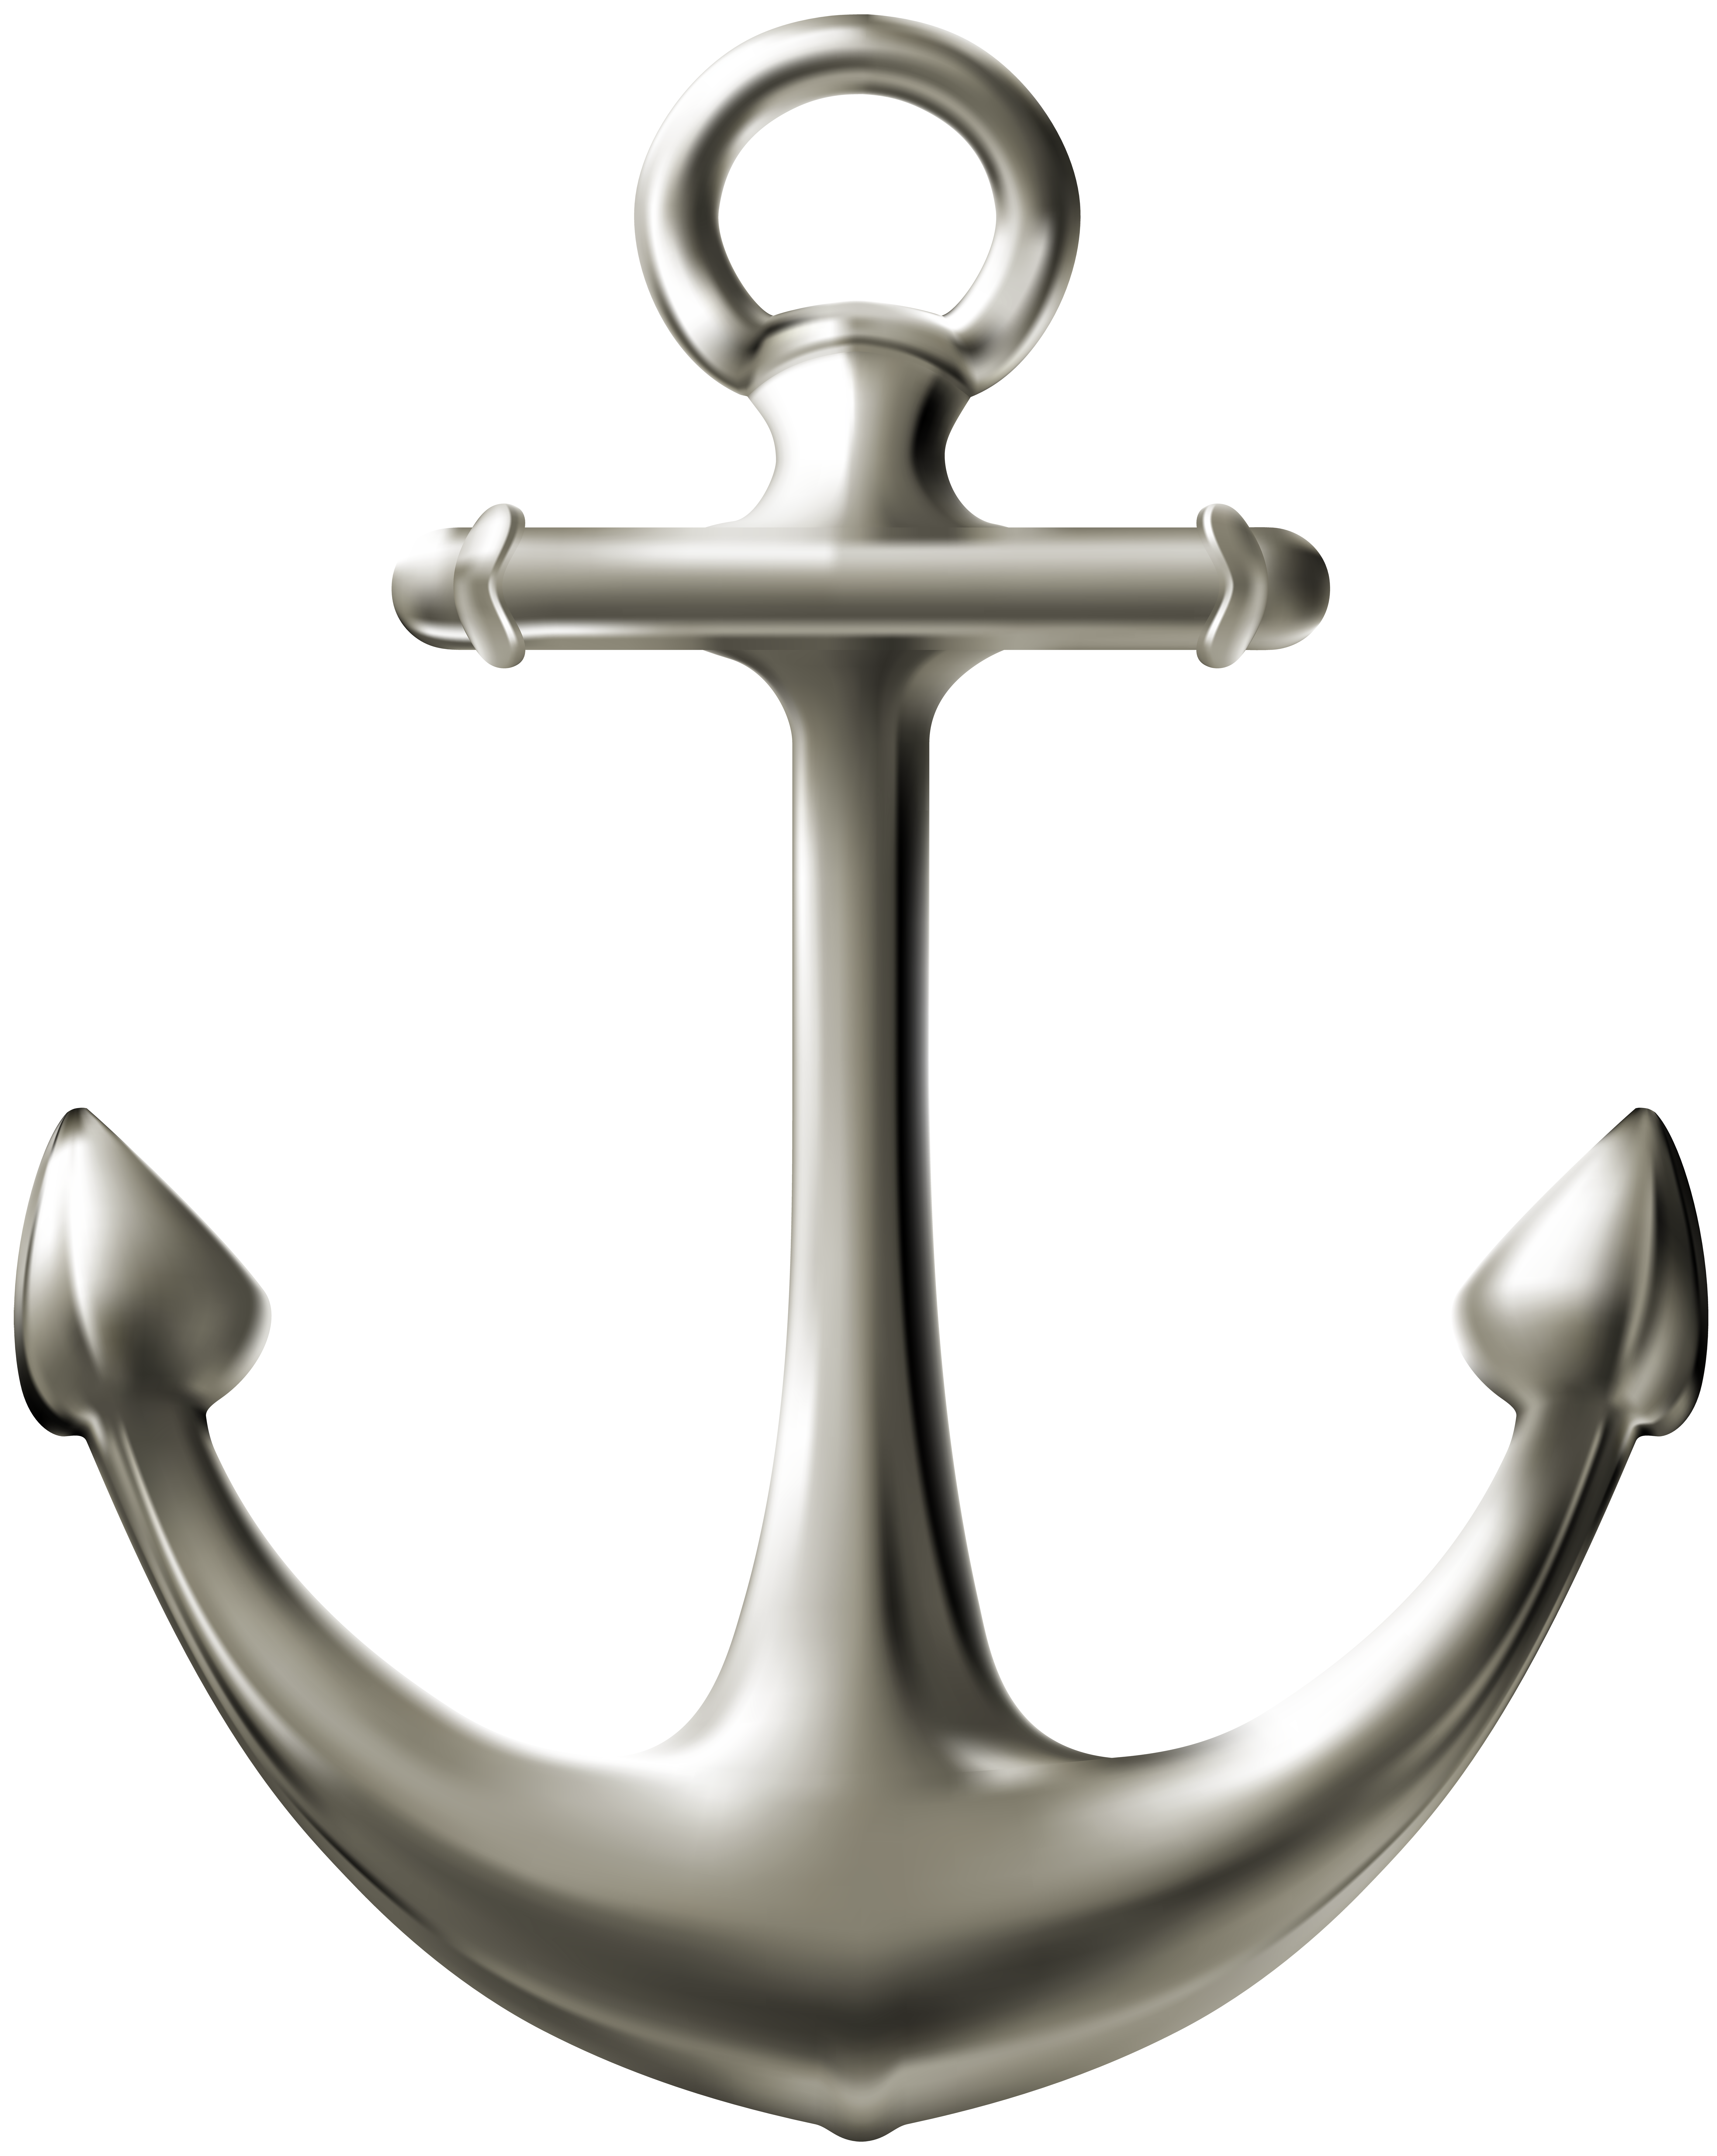 Image From Http Images Clipartpanda Com Cute Anchor Clip Art Anchor Clipart Black And White 4i9eapeie Png Anchor Clip Art Clip Art Nautical Fonts